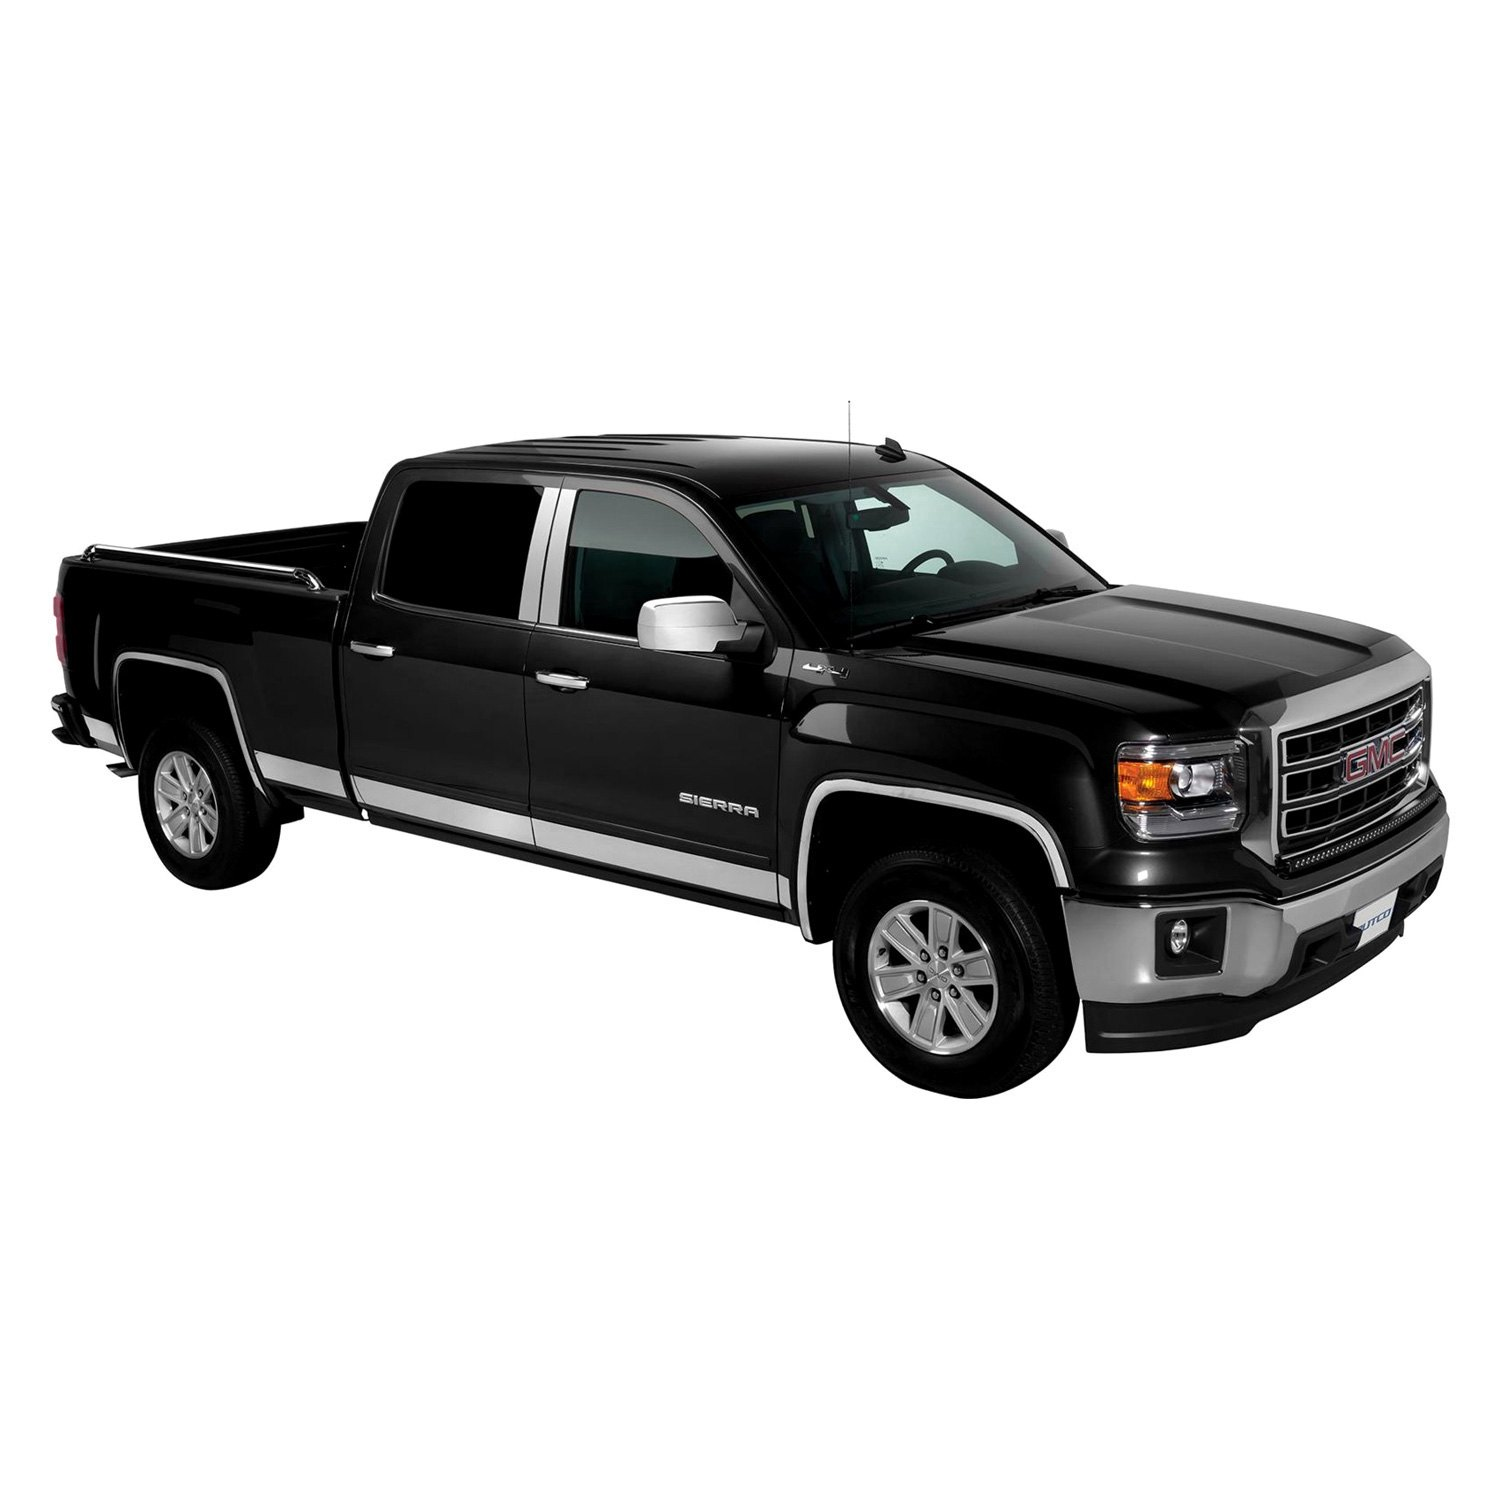 Putco gmc sierra 2015 rocker panel covers - 2015 gmc sierra interior accessories ...